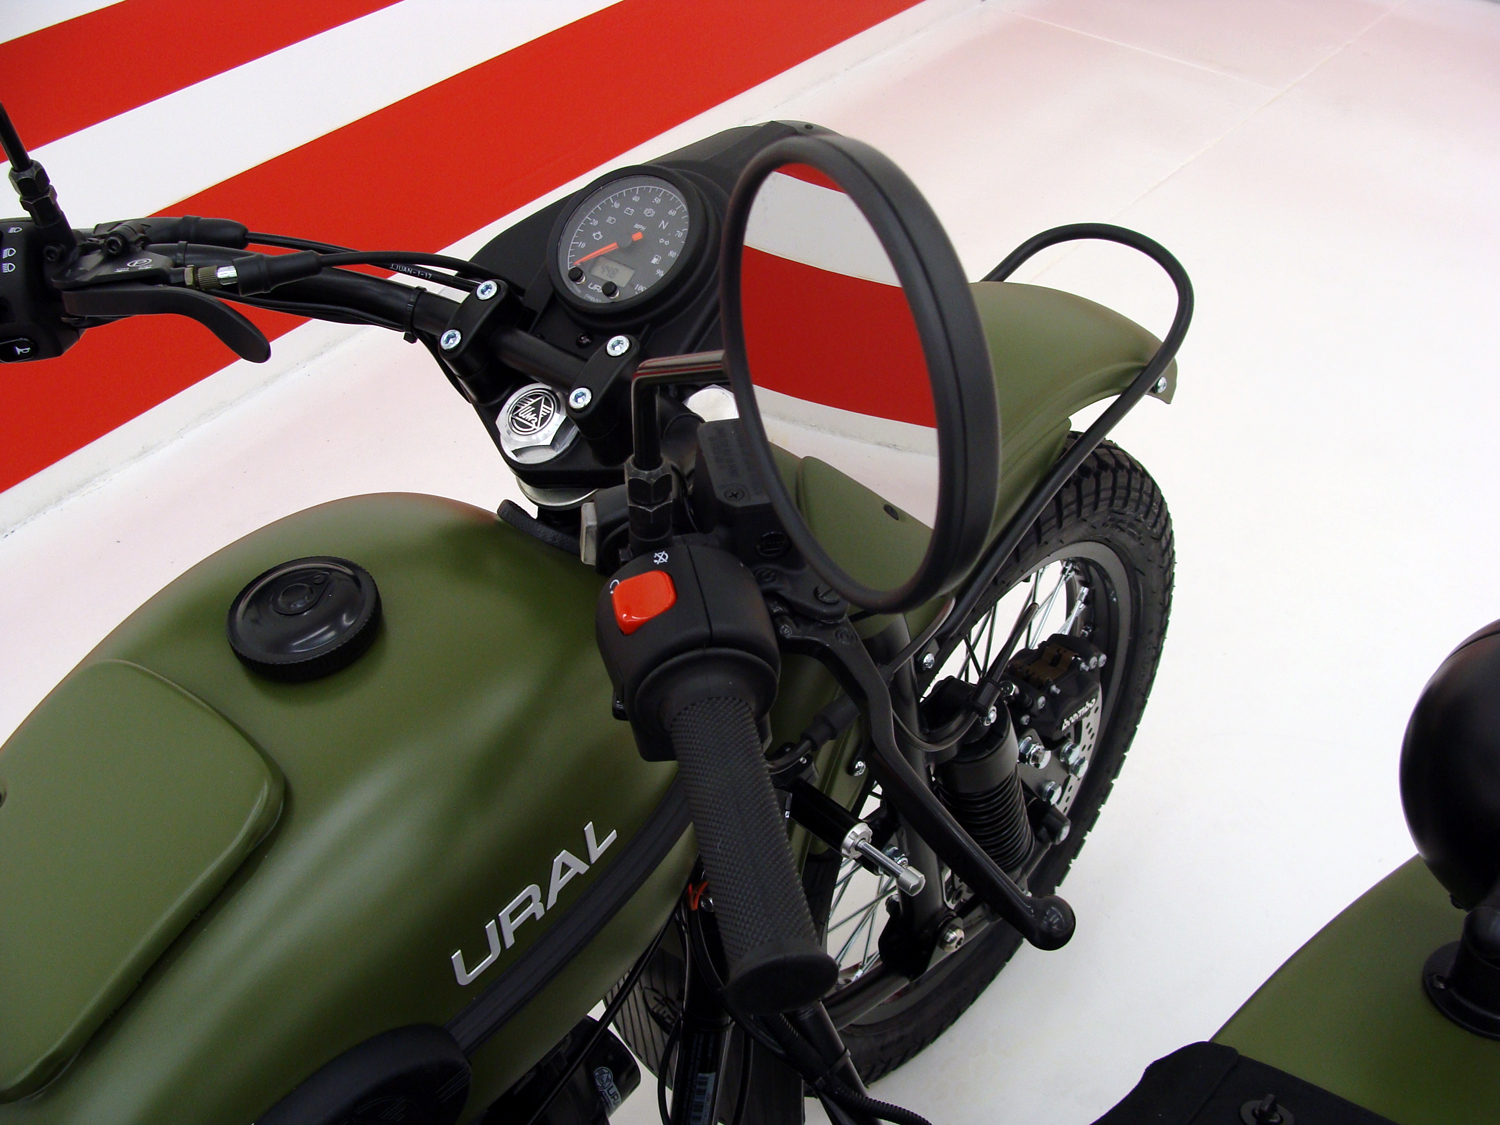 2017 Ural Gear Up (2WD) - SPECIAL ORDER MATTE GREEN